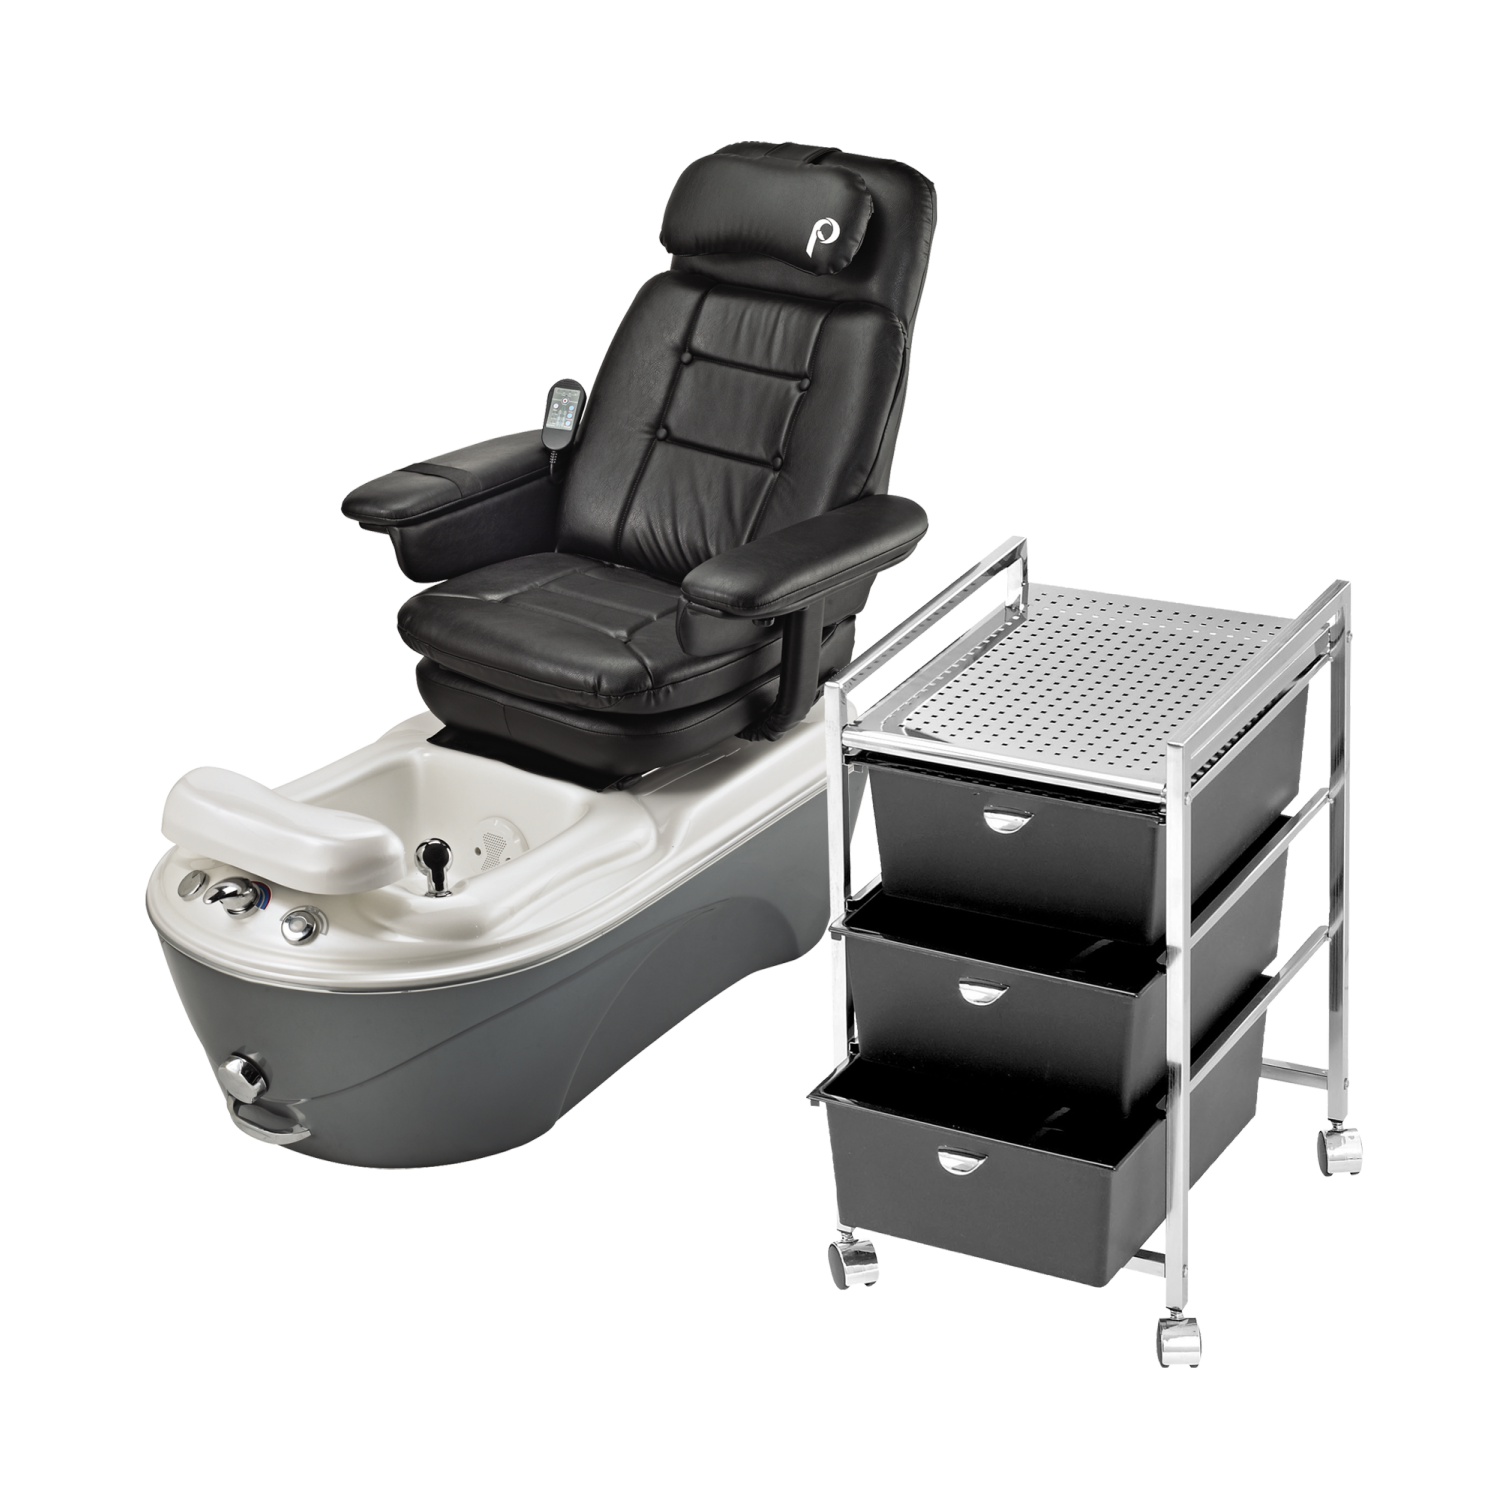 pibbs ps94 anzio pedicure spa with free d23 pedi cart